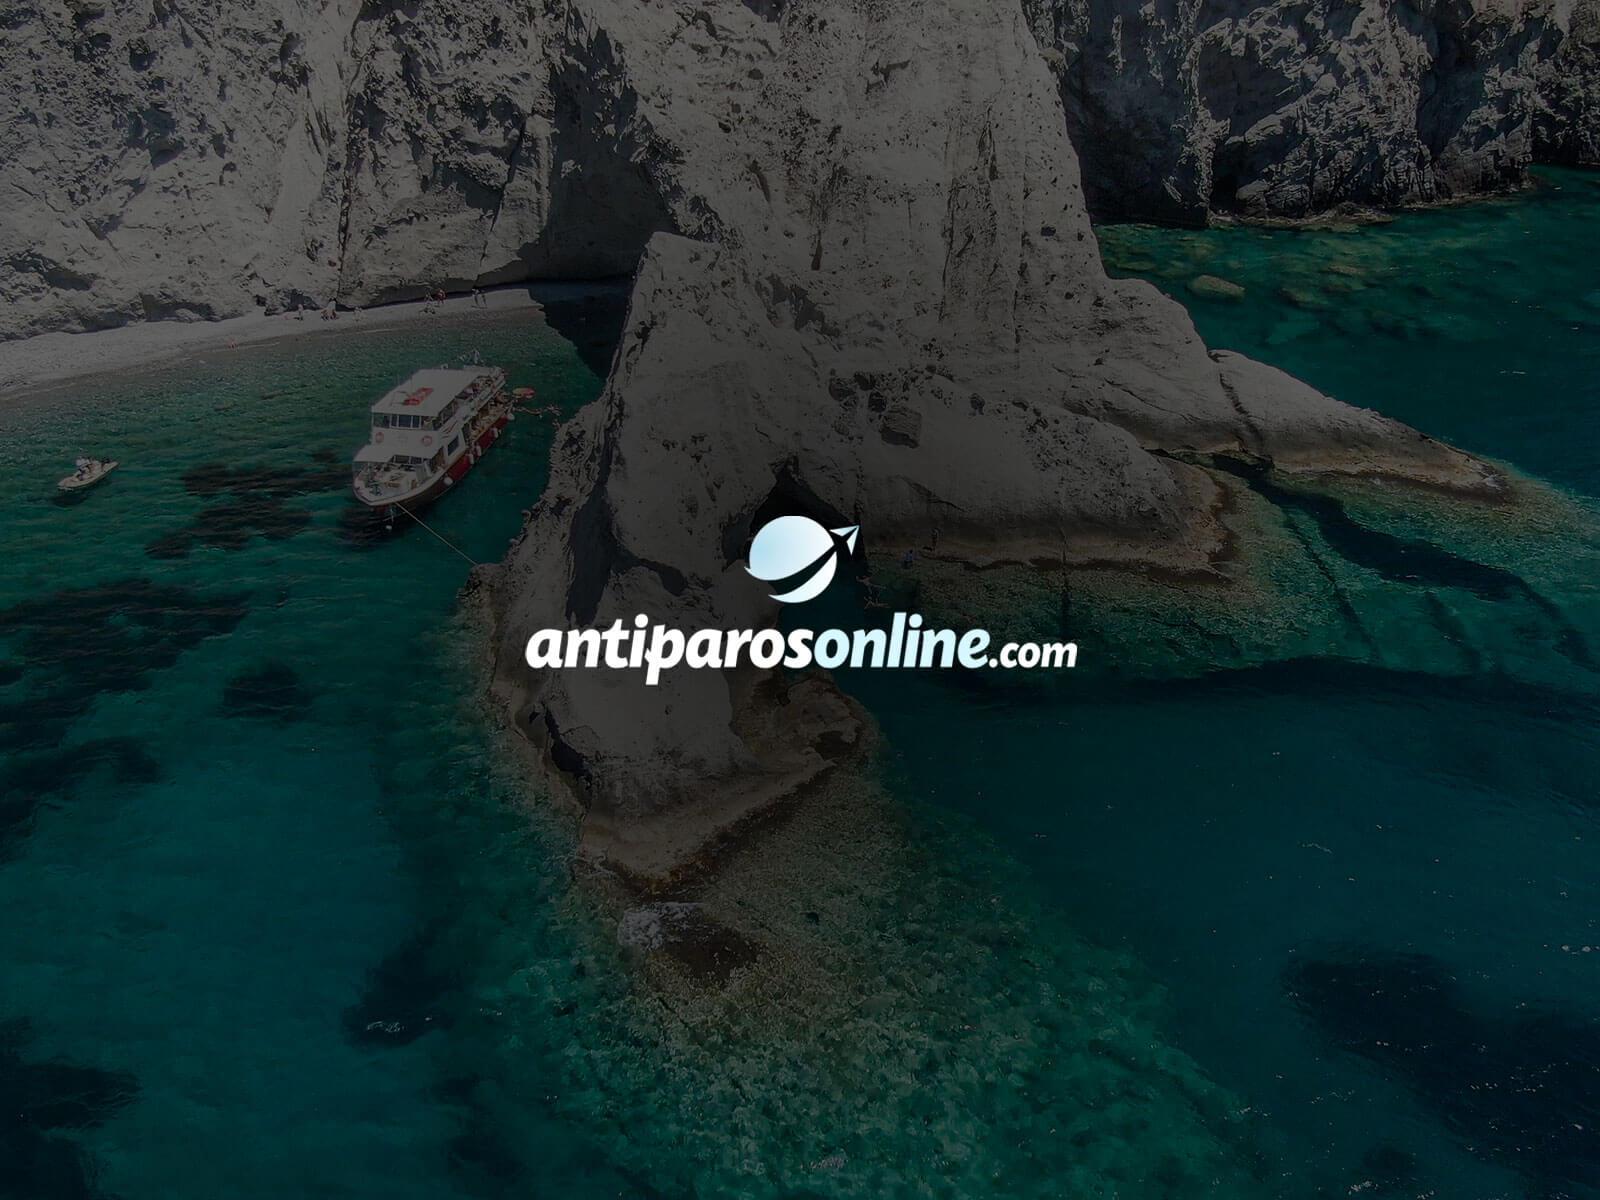 antiparosonline.com | The Antiparos travel guide